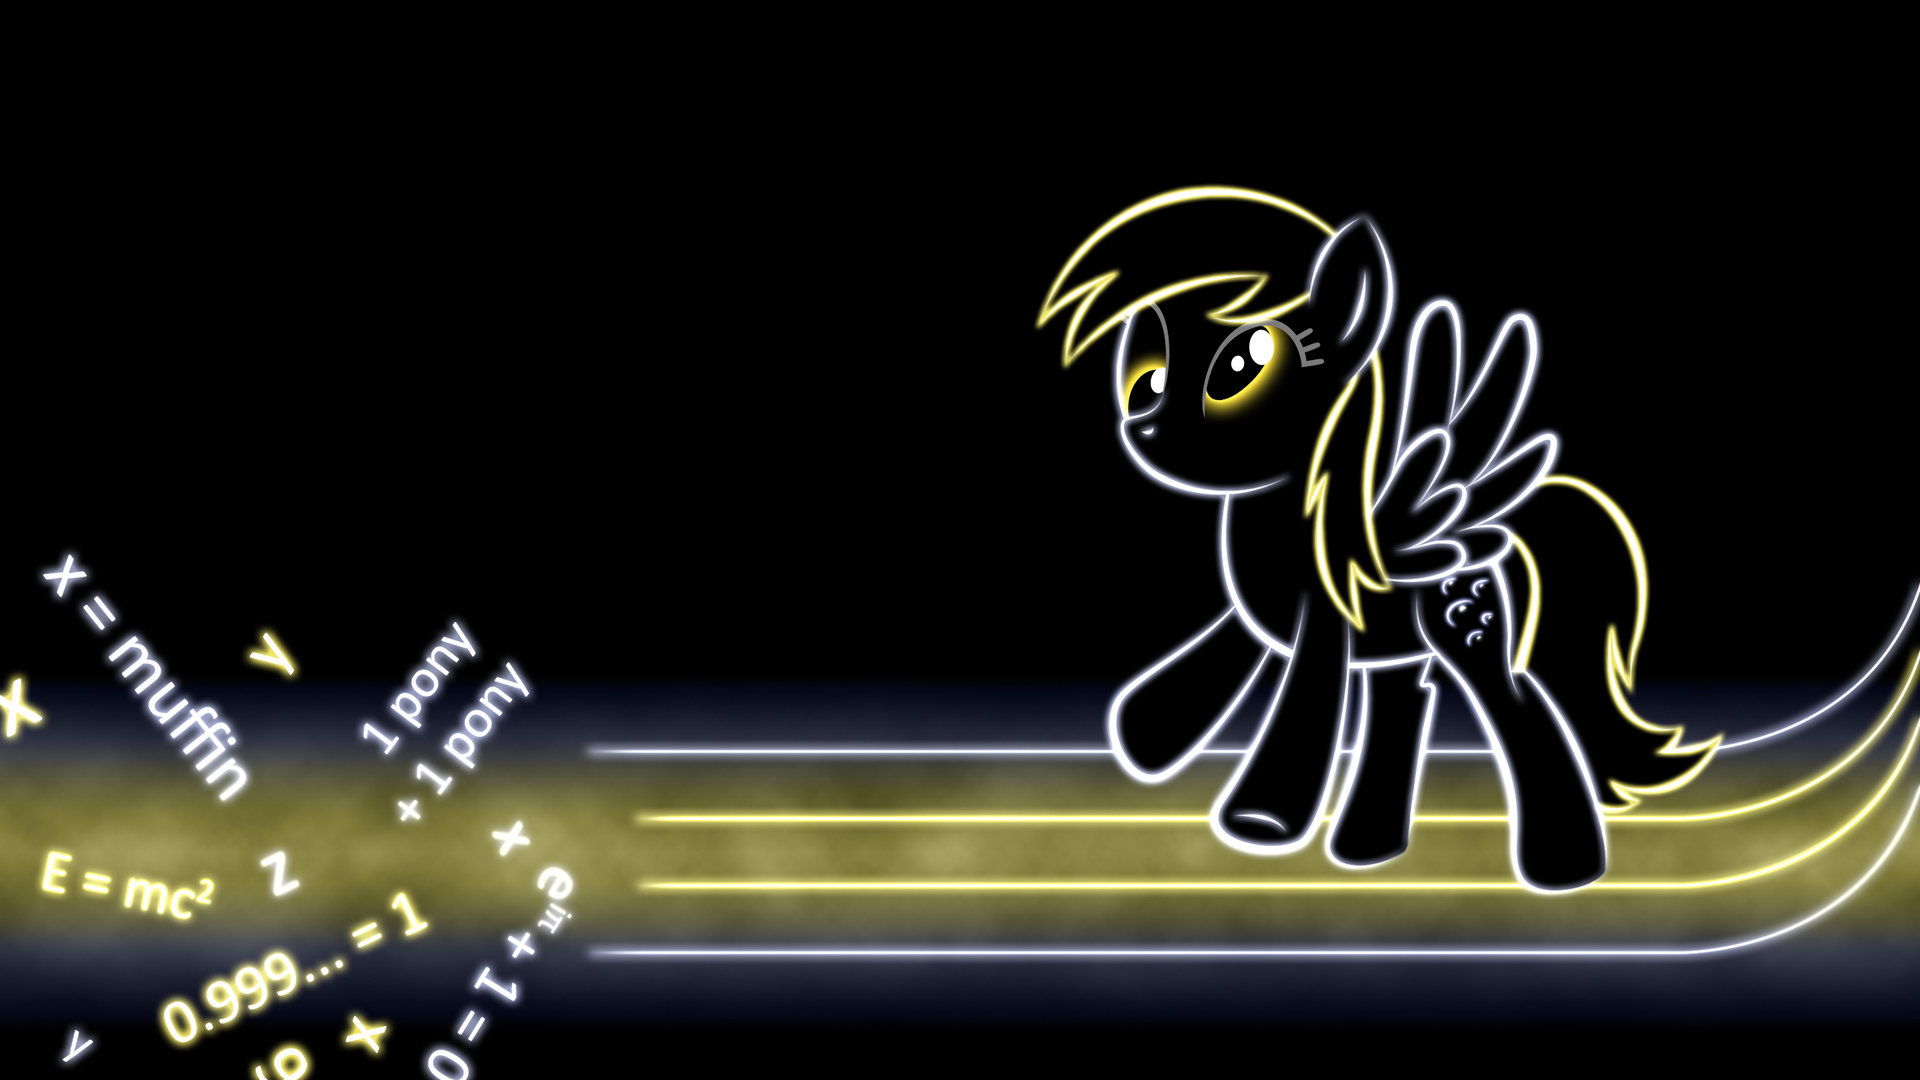 Download Full Hd 1920x1080 Derpy Hooves Desktop Background ID154308 For Free